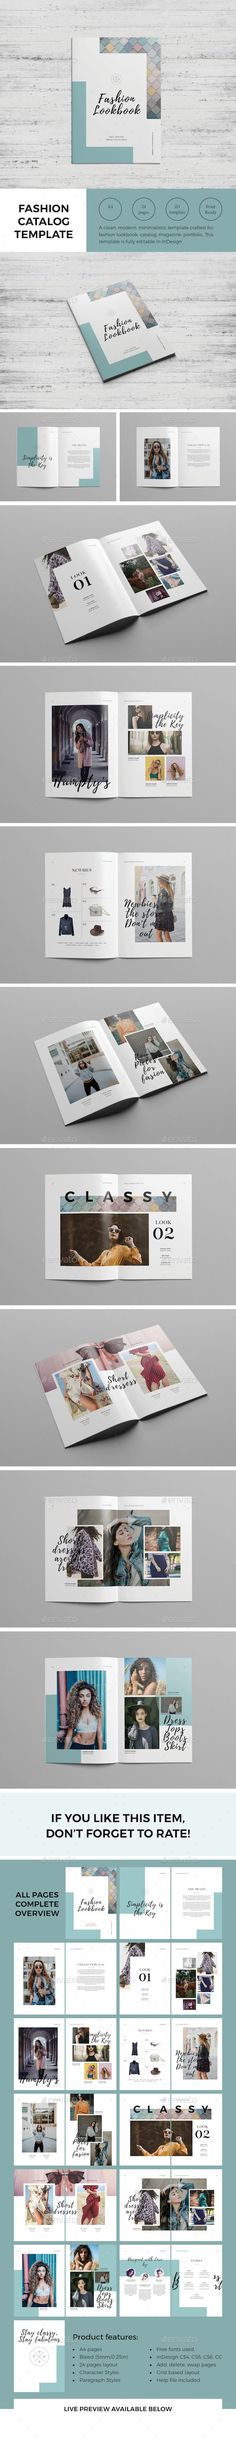 Fashion Catalog / Lookbook - Magazines Print Templates